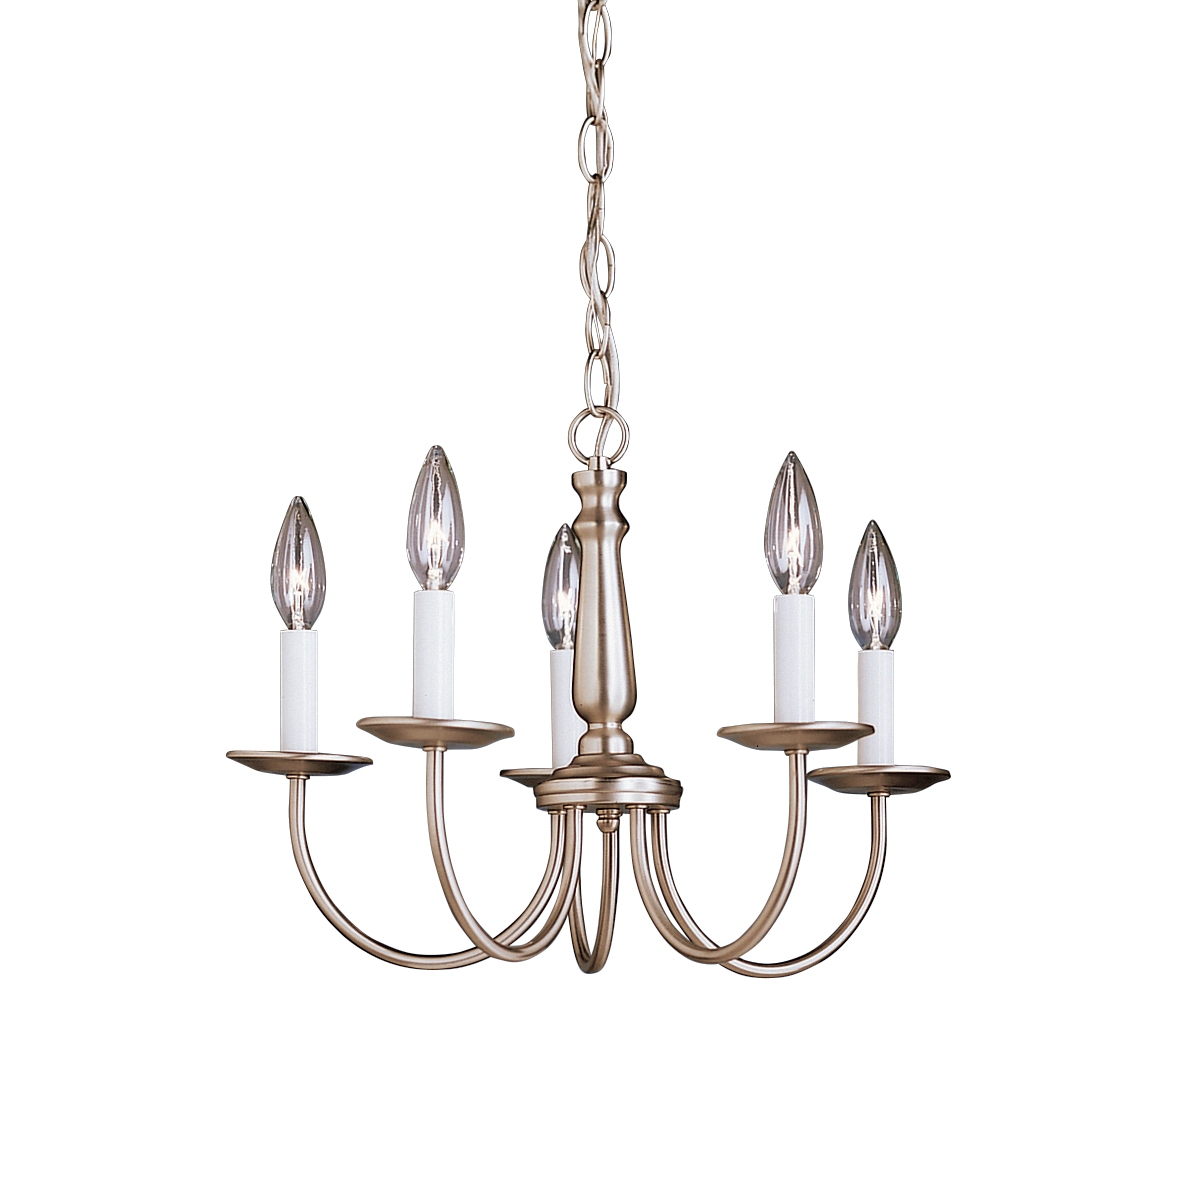 Kichler Salem Chandelier - Brushed Nickel (1770NI)